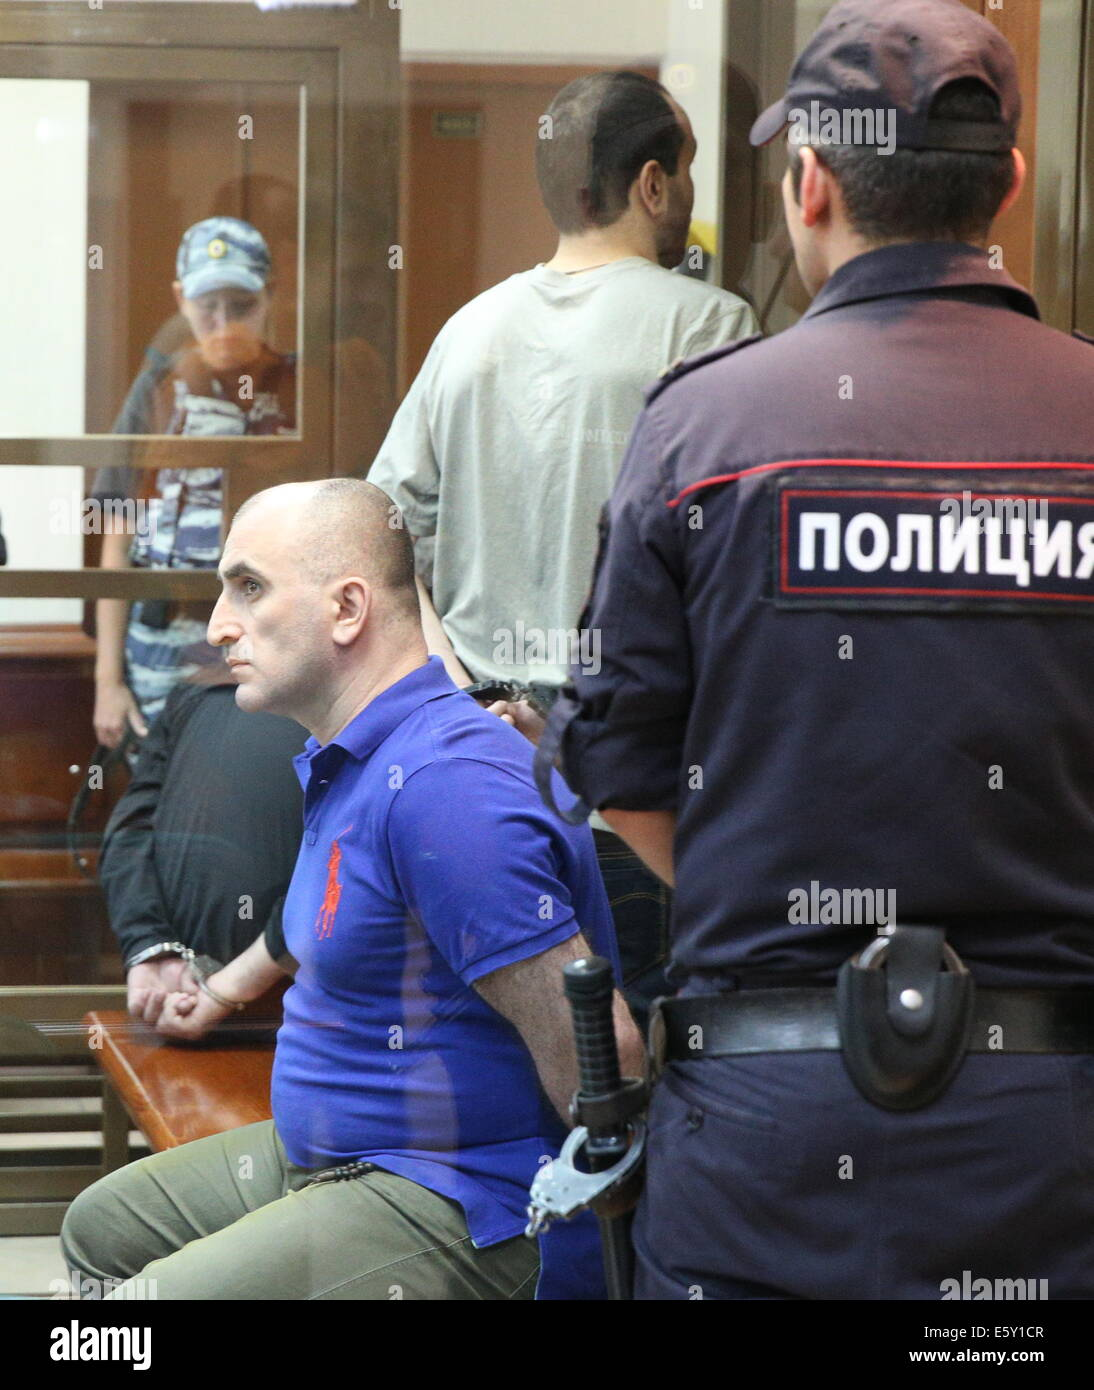 Moscow, Russia. 7th Aug, 2014. Alexander Berishvili (seated) appears in a Moscow court during hearings in the murder - Stock Image